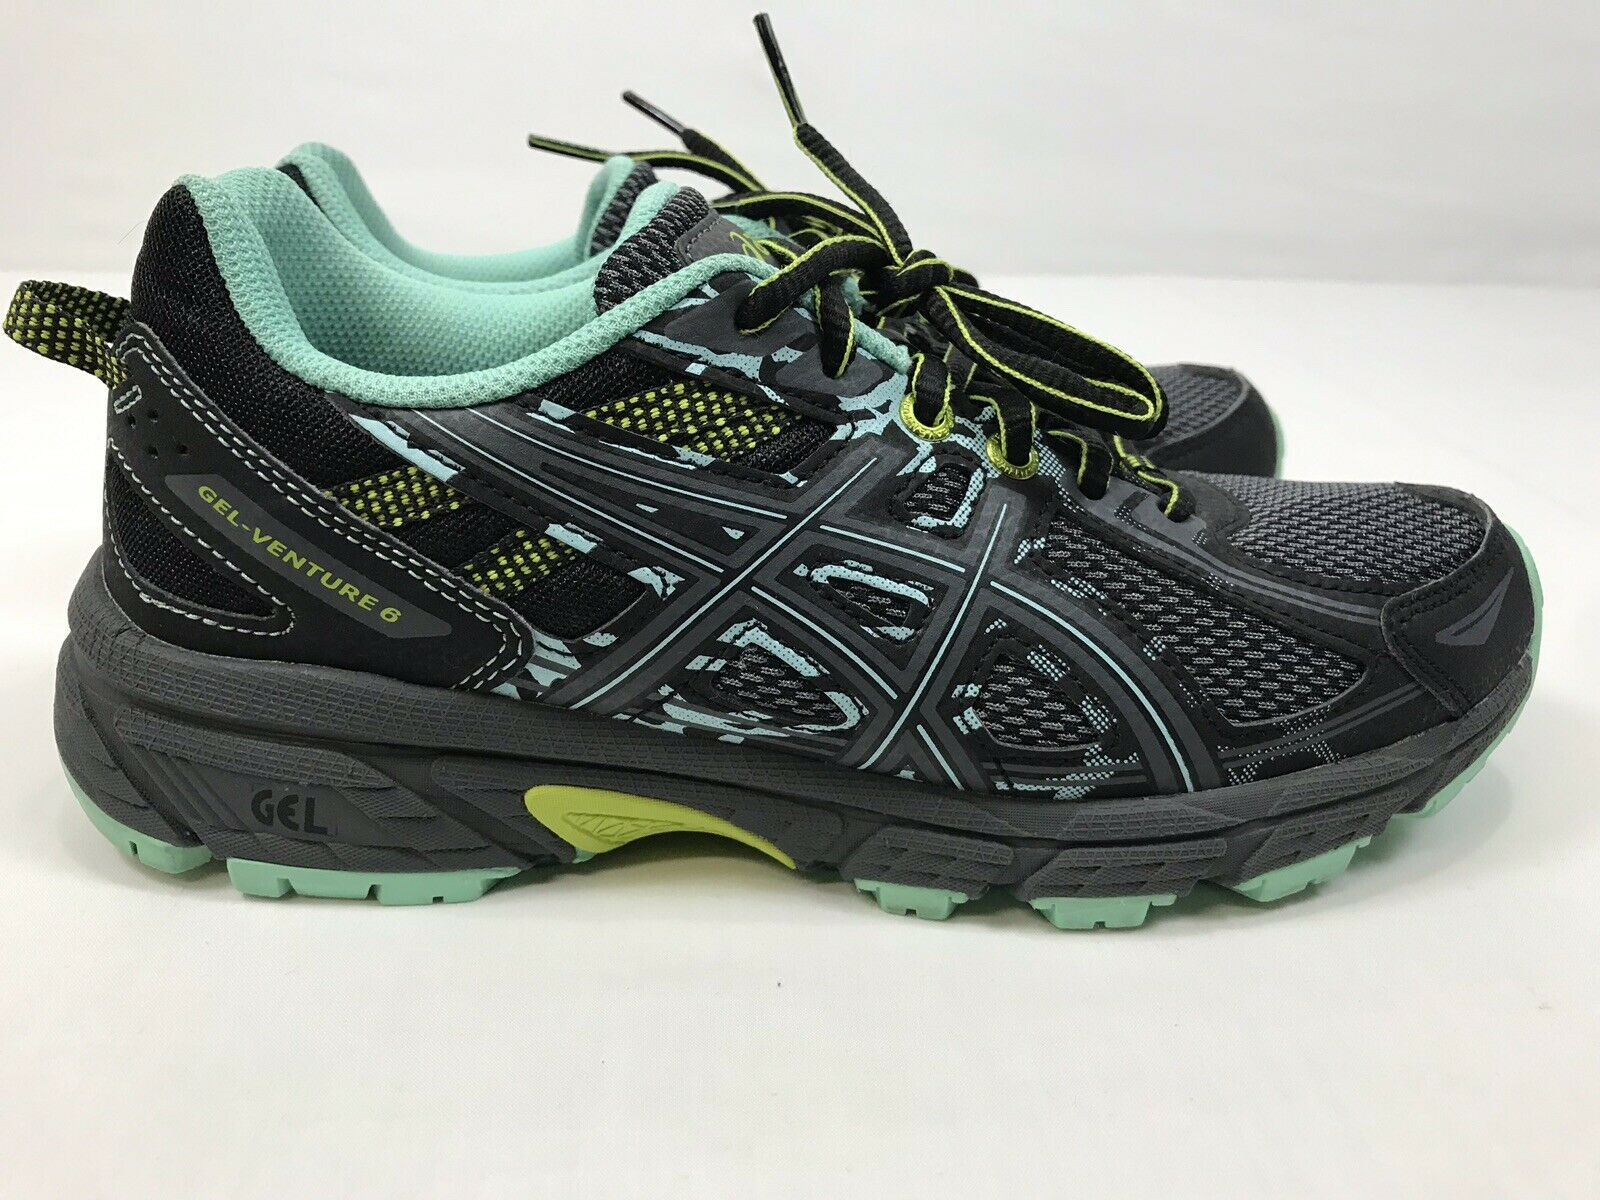 Asics Gel-Venture 6 T7G6N.9097 Trail Running shoes Women's Size 6.5 Grey